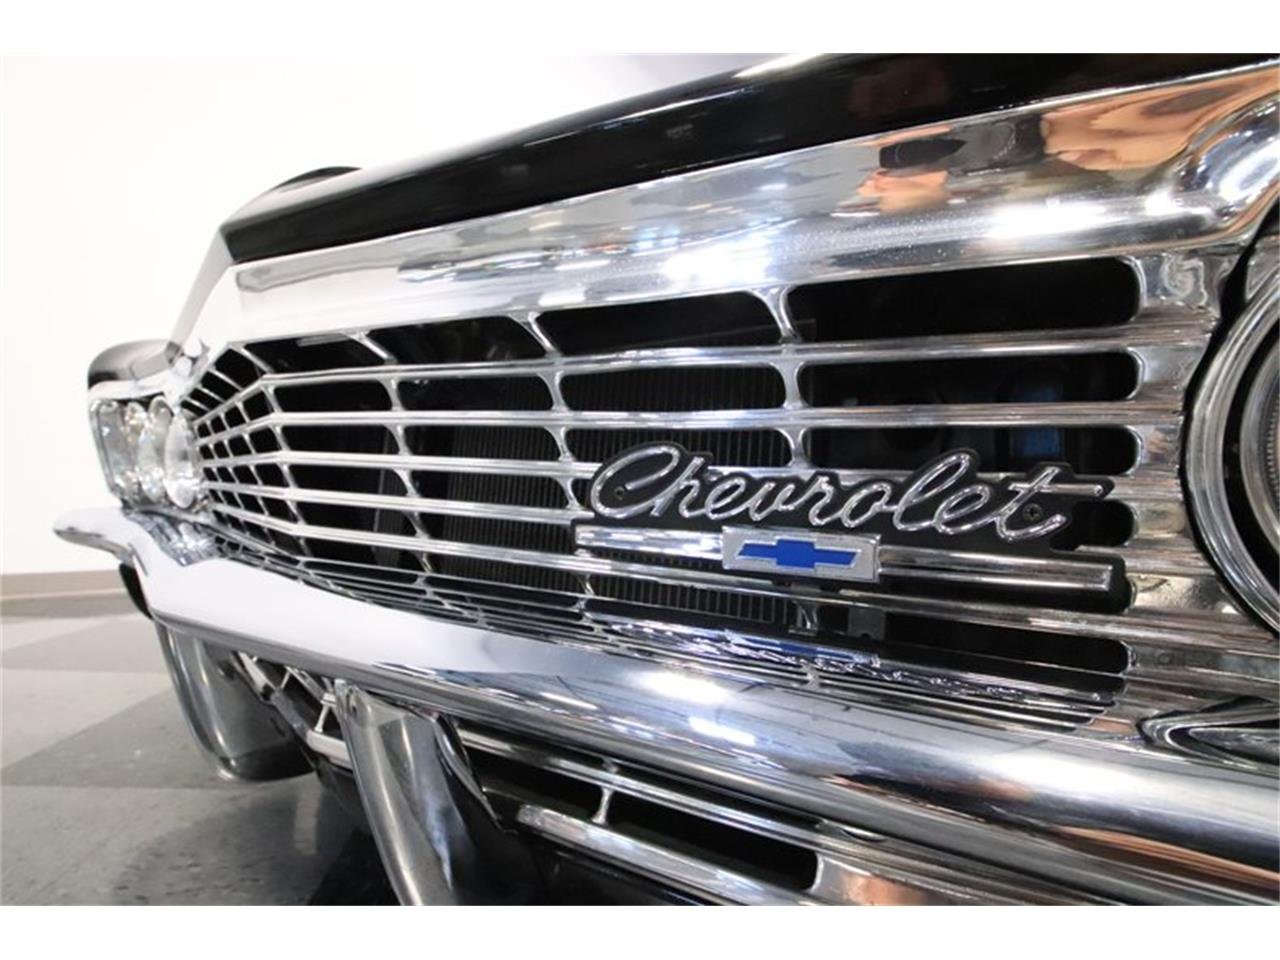 Large Picture of Classic '66 Chevrolet Impala - $52,995.00 Offered by Streetside Classics - Phoenix - Q2EF